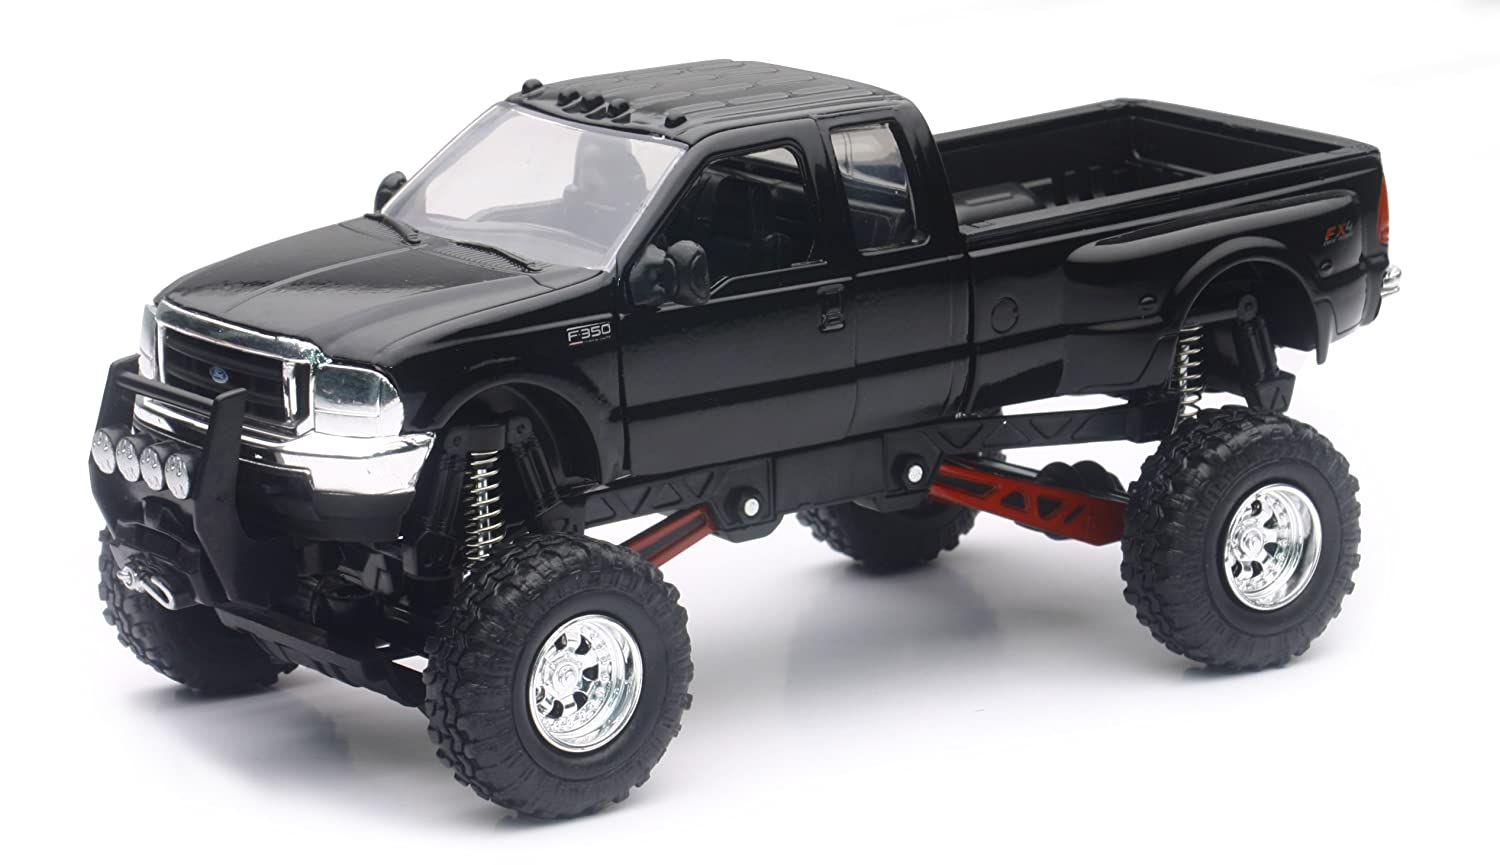 New Ray Ford f 350 Die Cast with Suspension 1 32° 54536 Blue